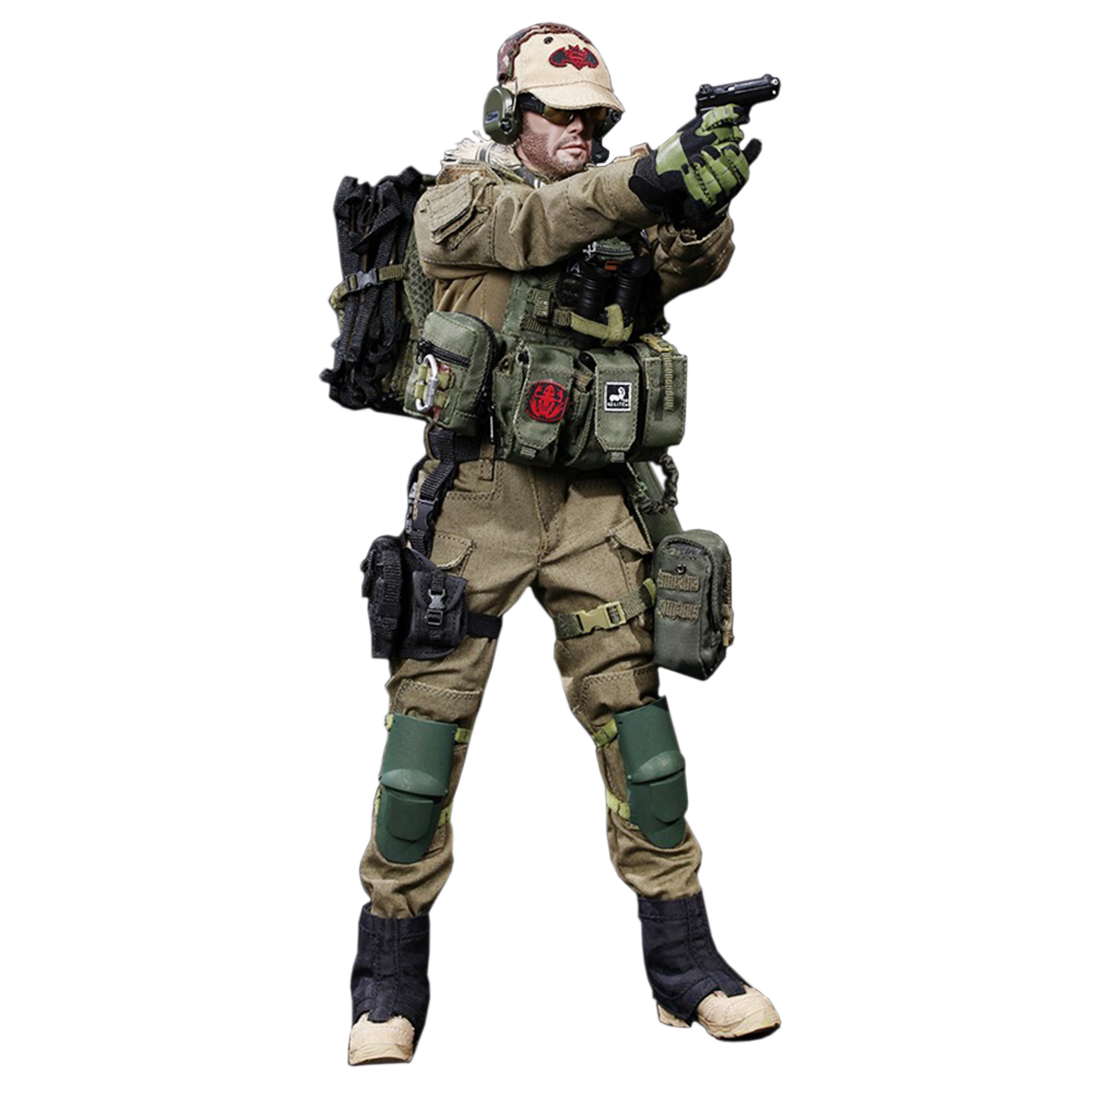 1/6 Scale FLAGSET Israeli Special Forces Movable Action Figure 12'' Collectable Military Soldier Model Toys for Birthday Gift-에서액션 & 장난감 숫자부터 완구 & 취미 의  그룹 1